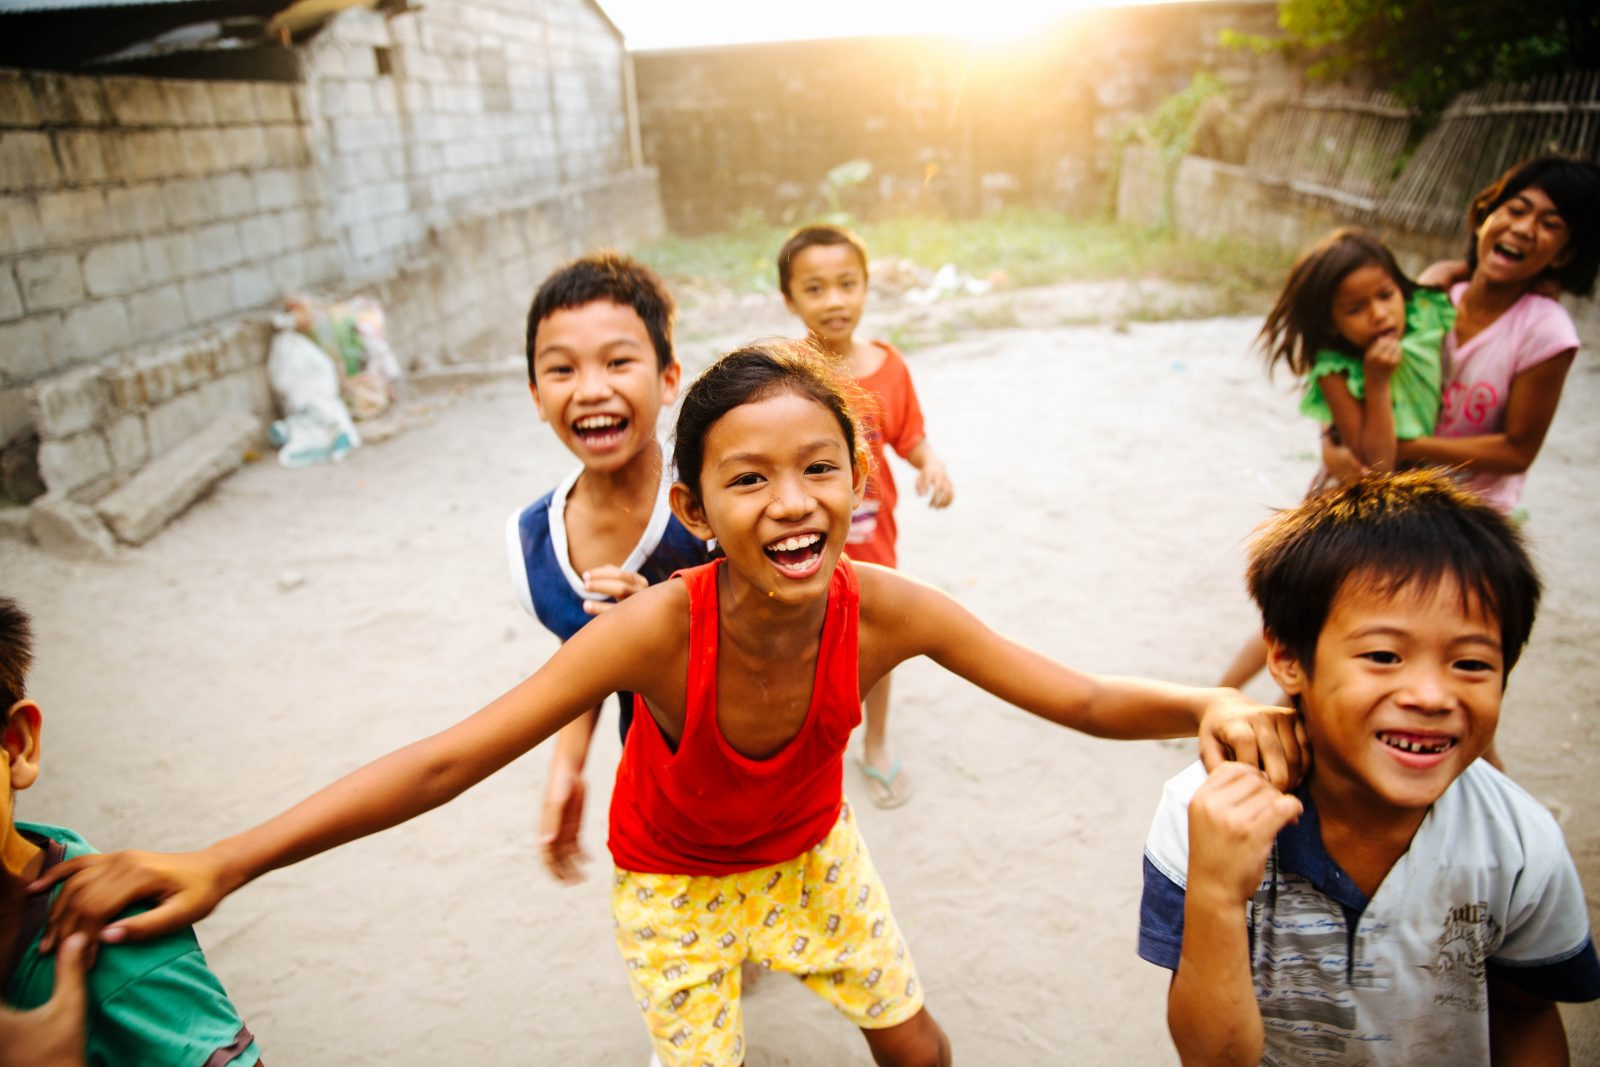 Children laughing and running in the Philippines